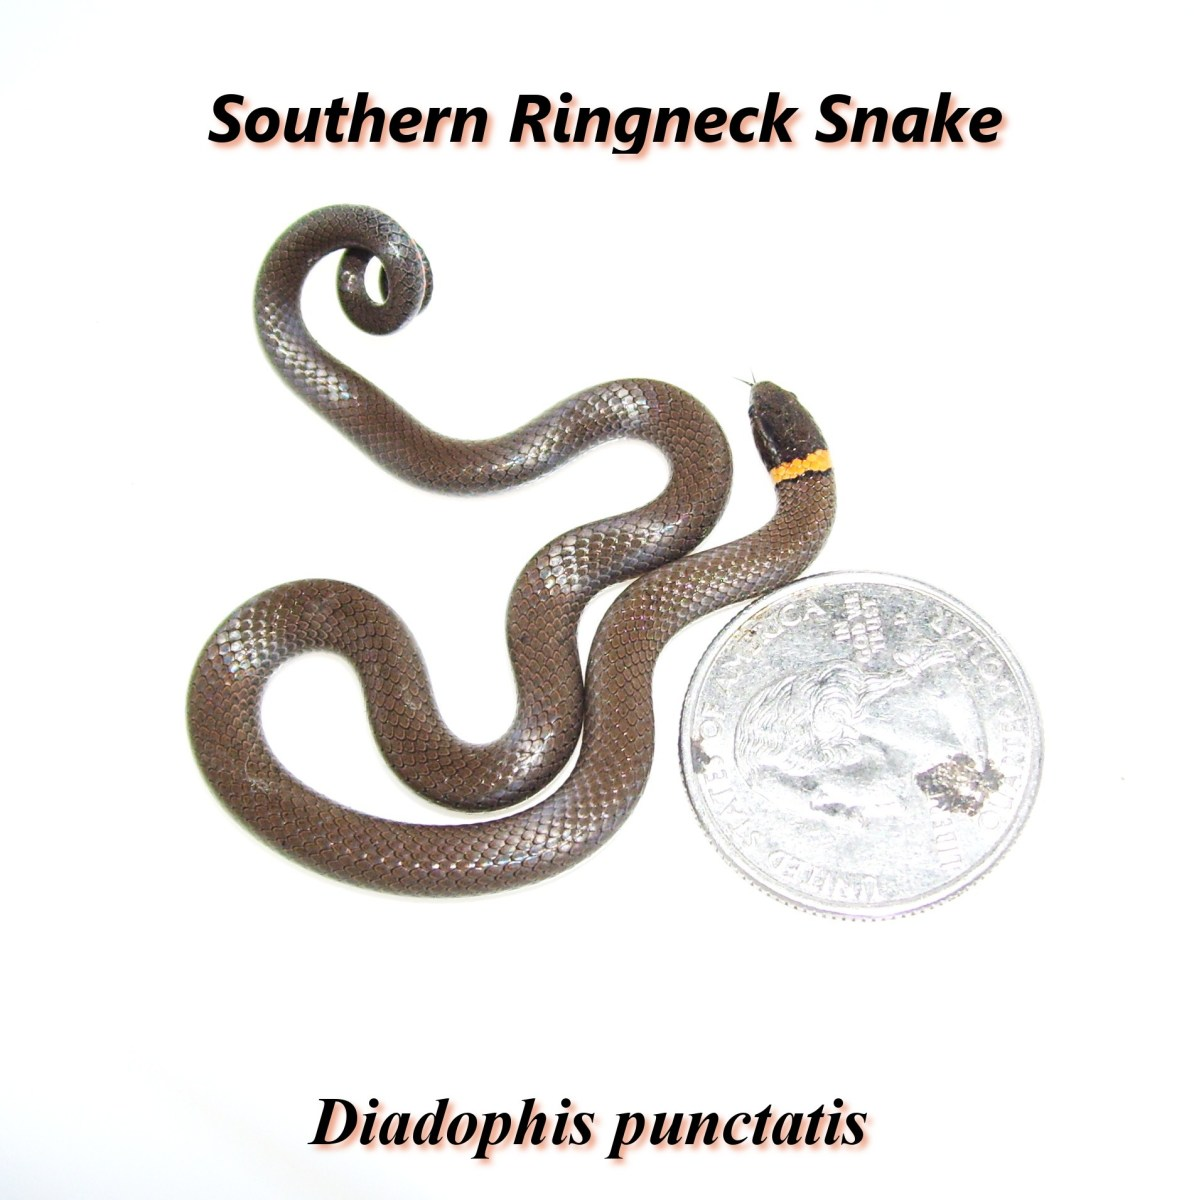 Northern Ring Snake Poisonous